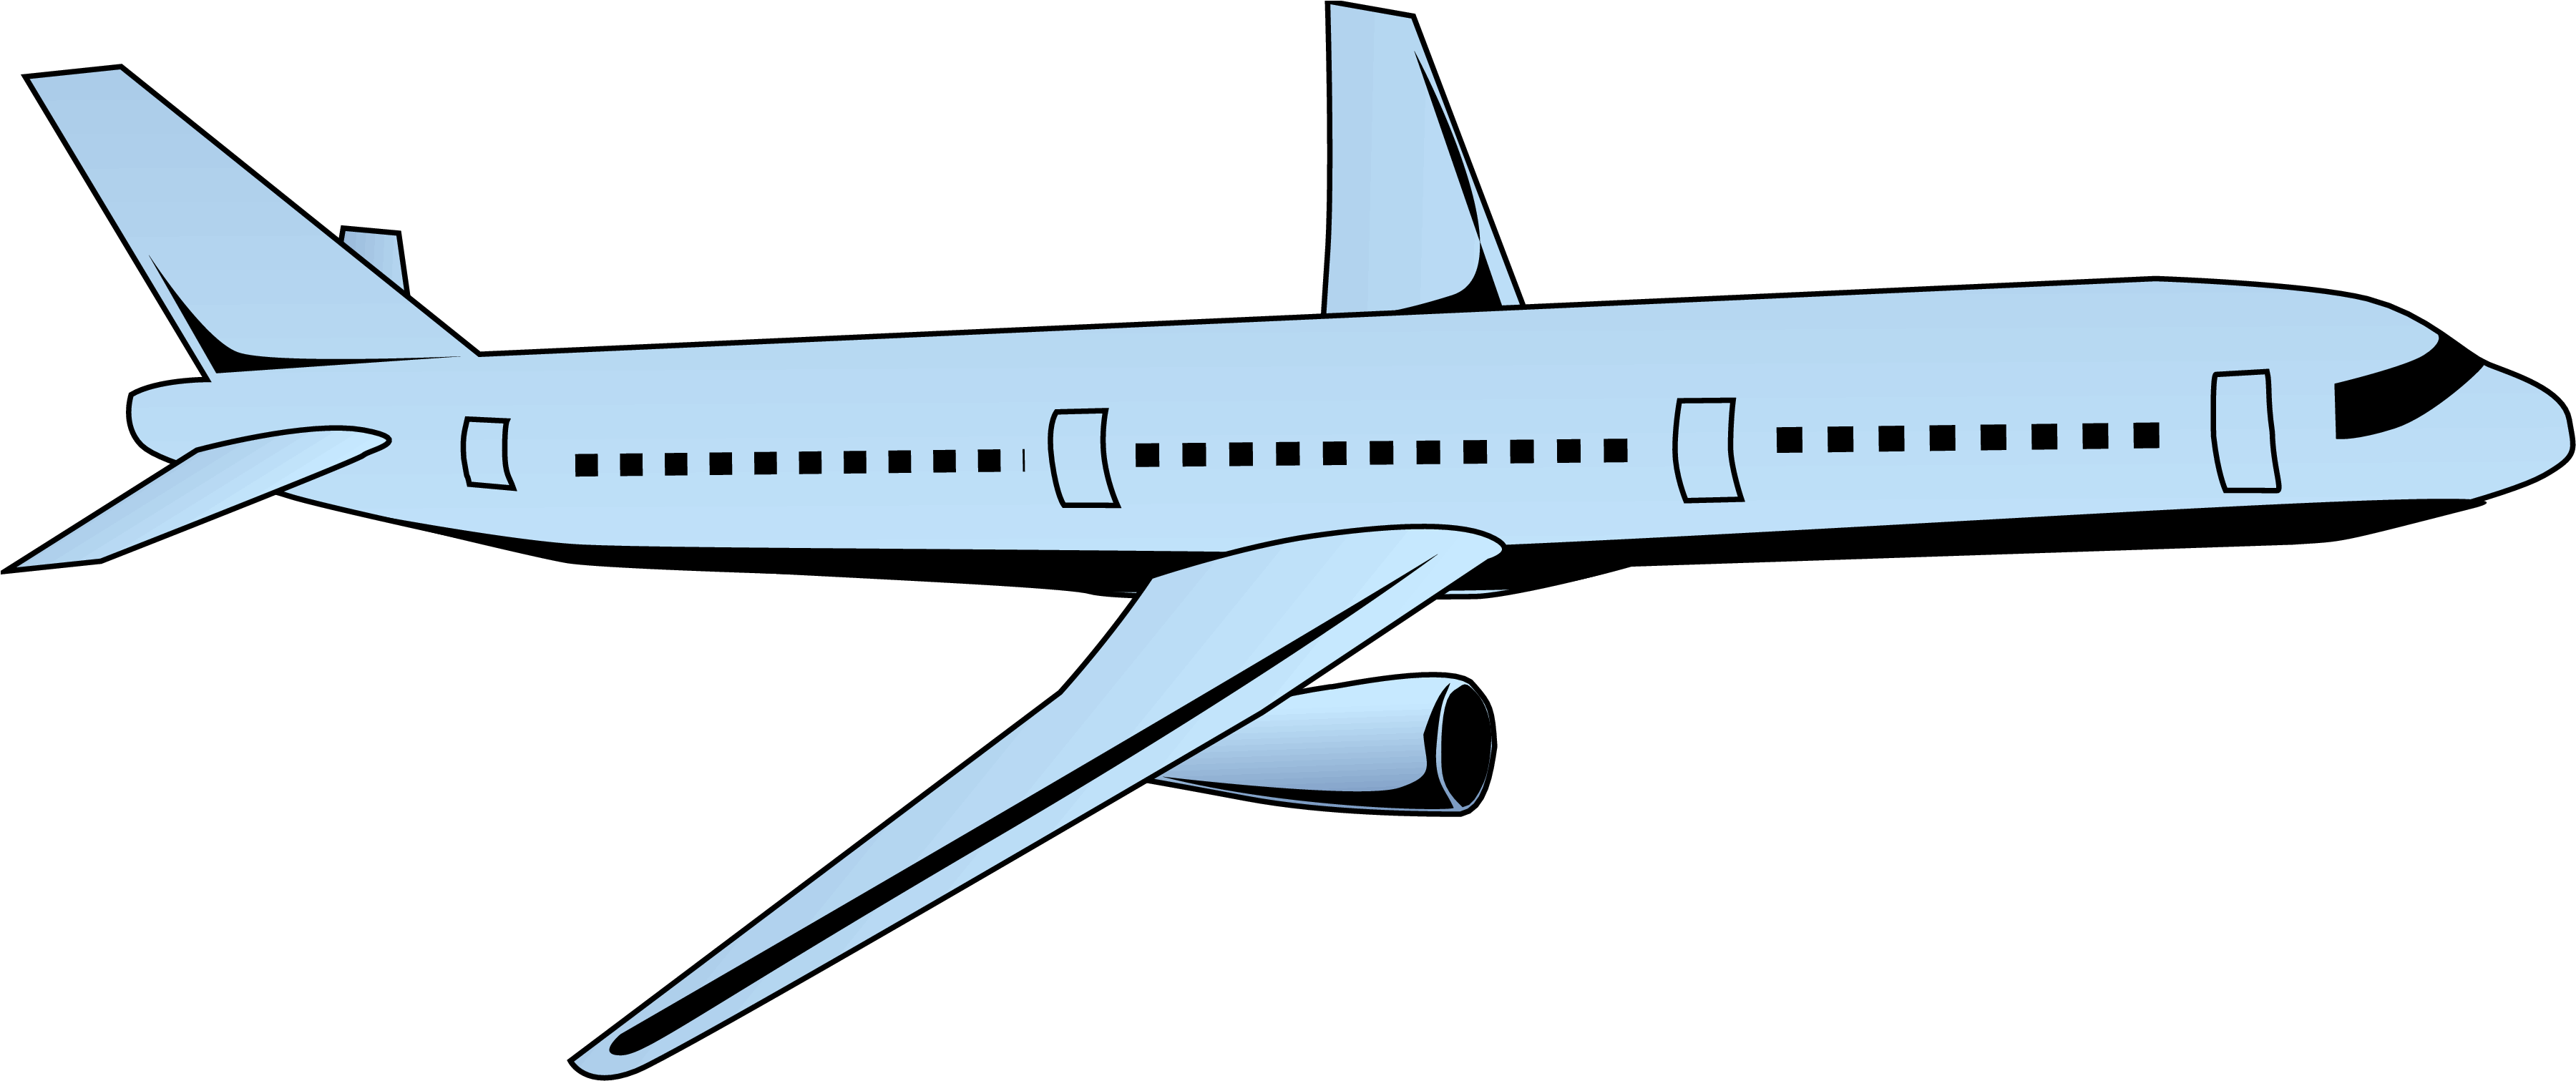 Plane Png Image Airplane Clip Art.